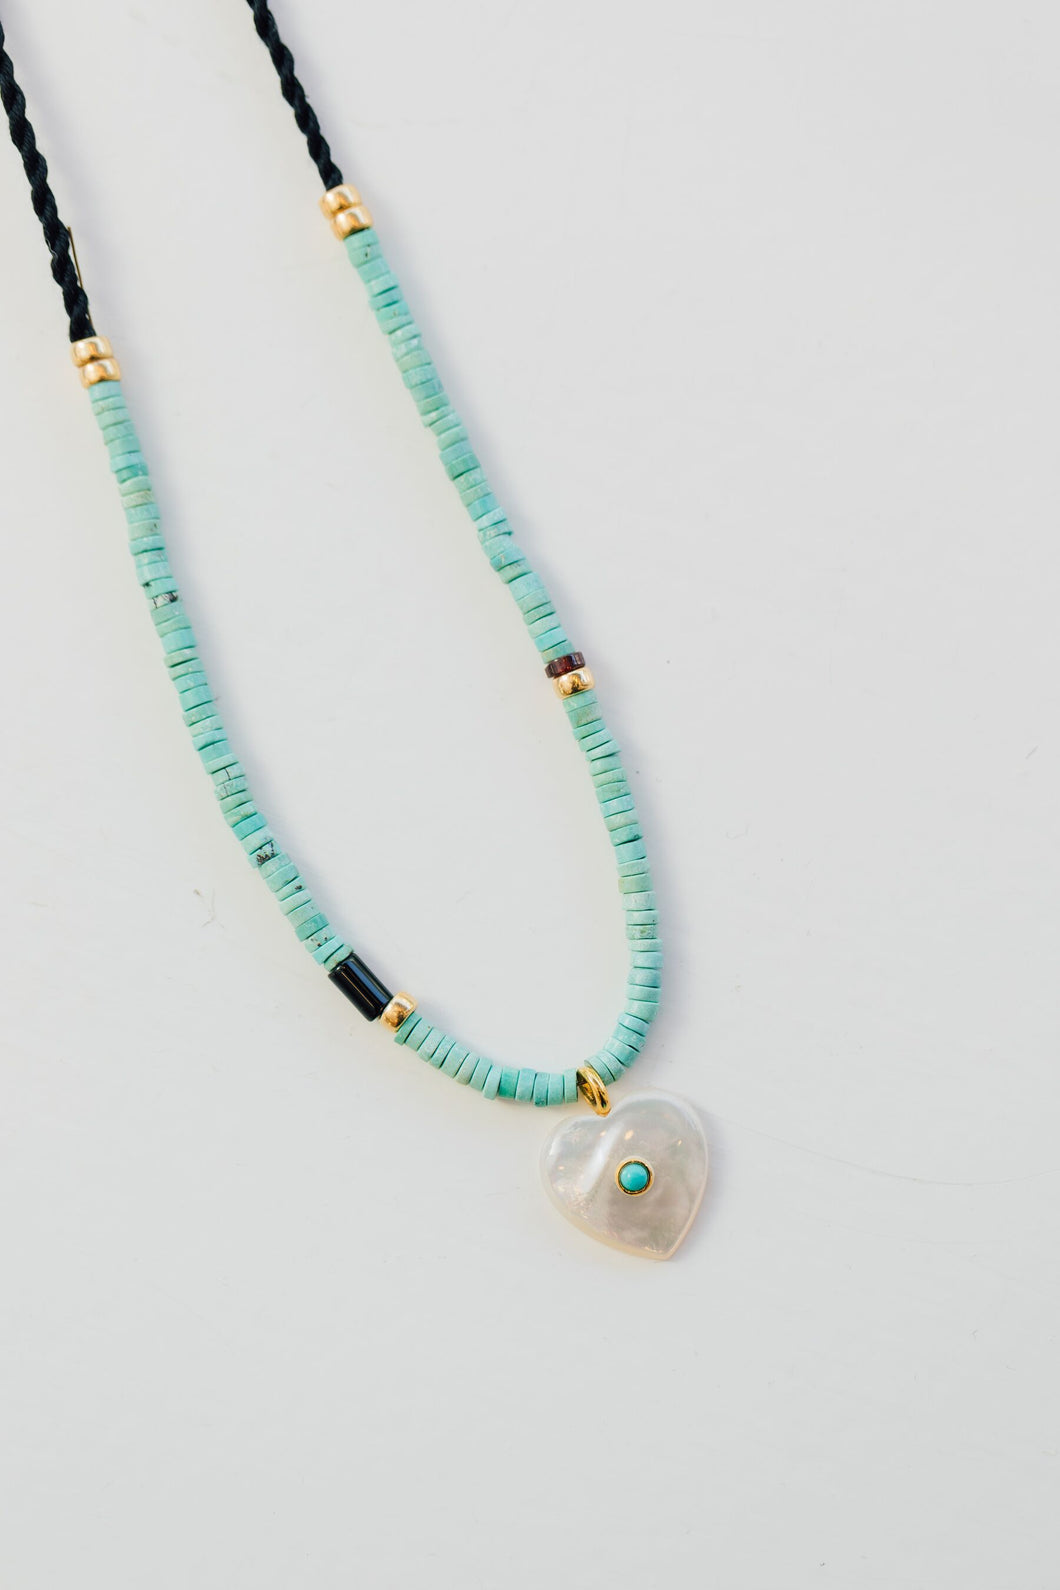 Turquoise necklace with mother of pearl heart